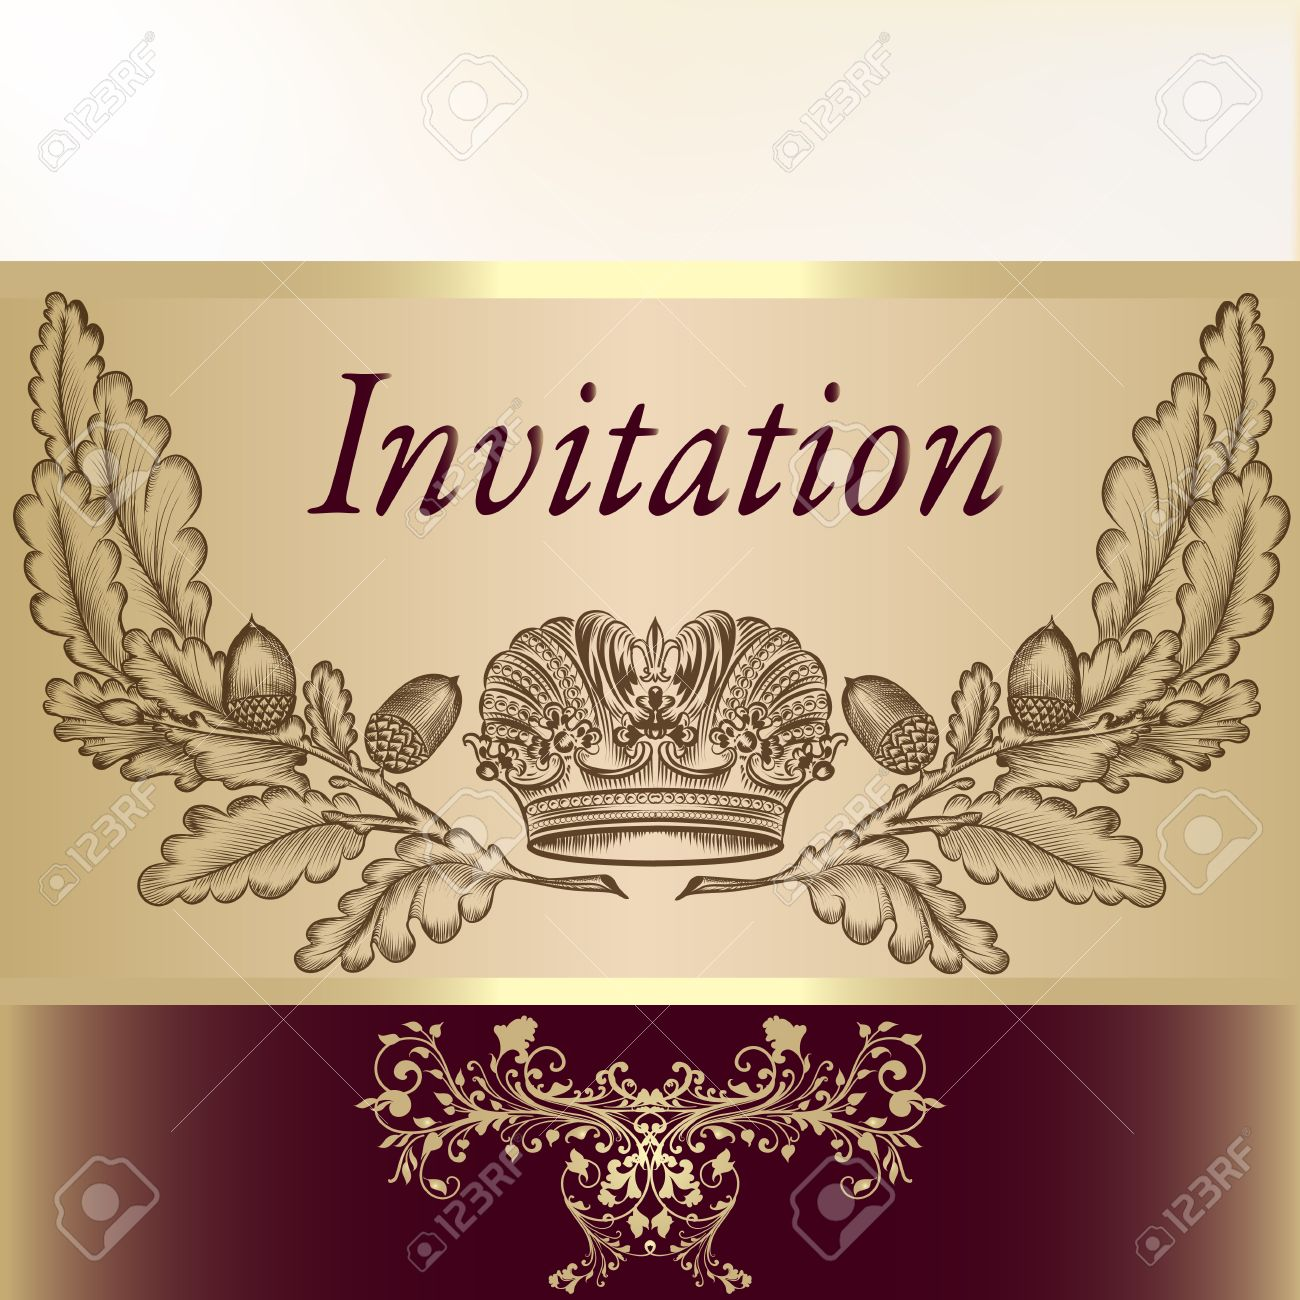 Royal Invitation Card For Design Royalty Free Cliparts Vectors And